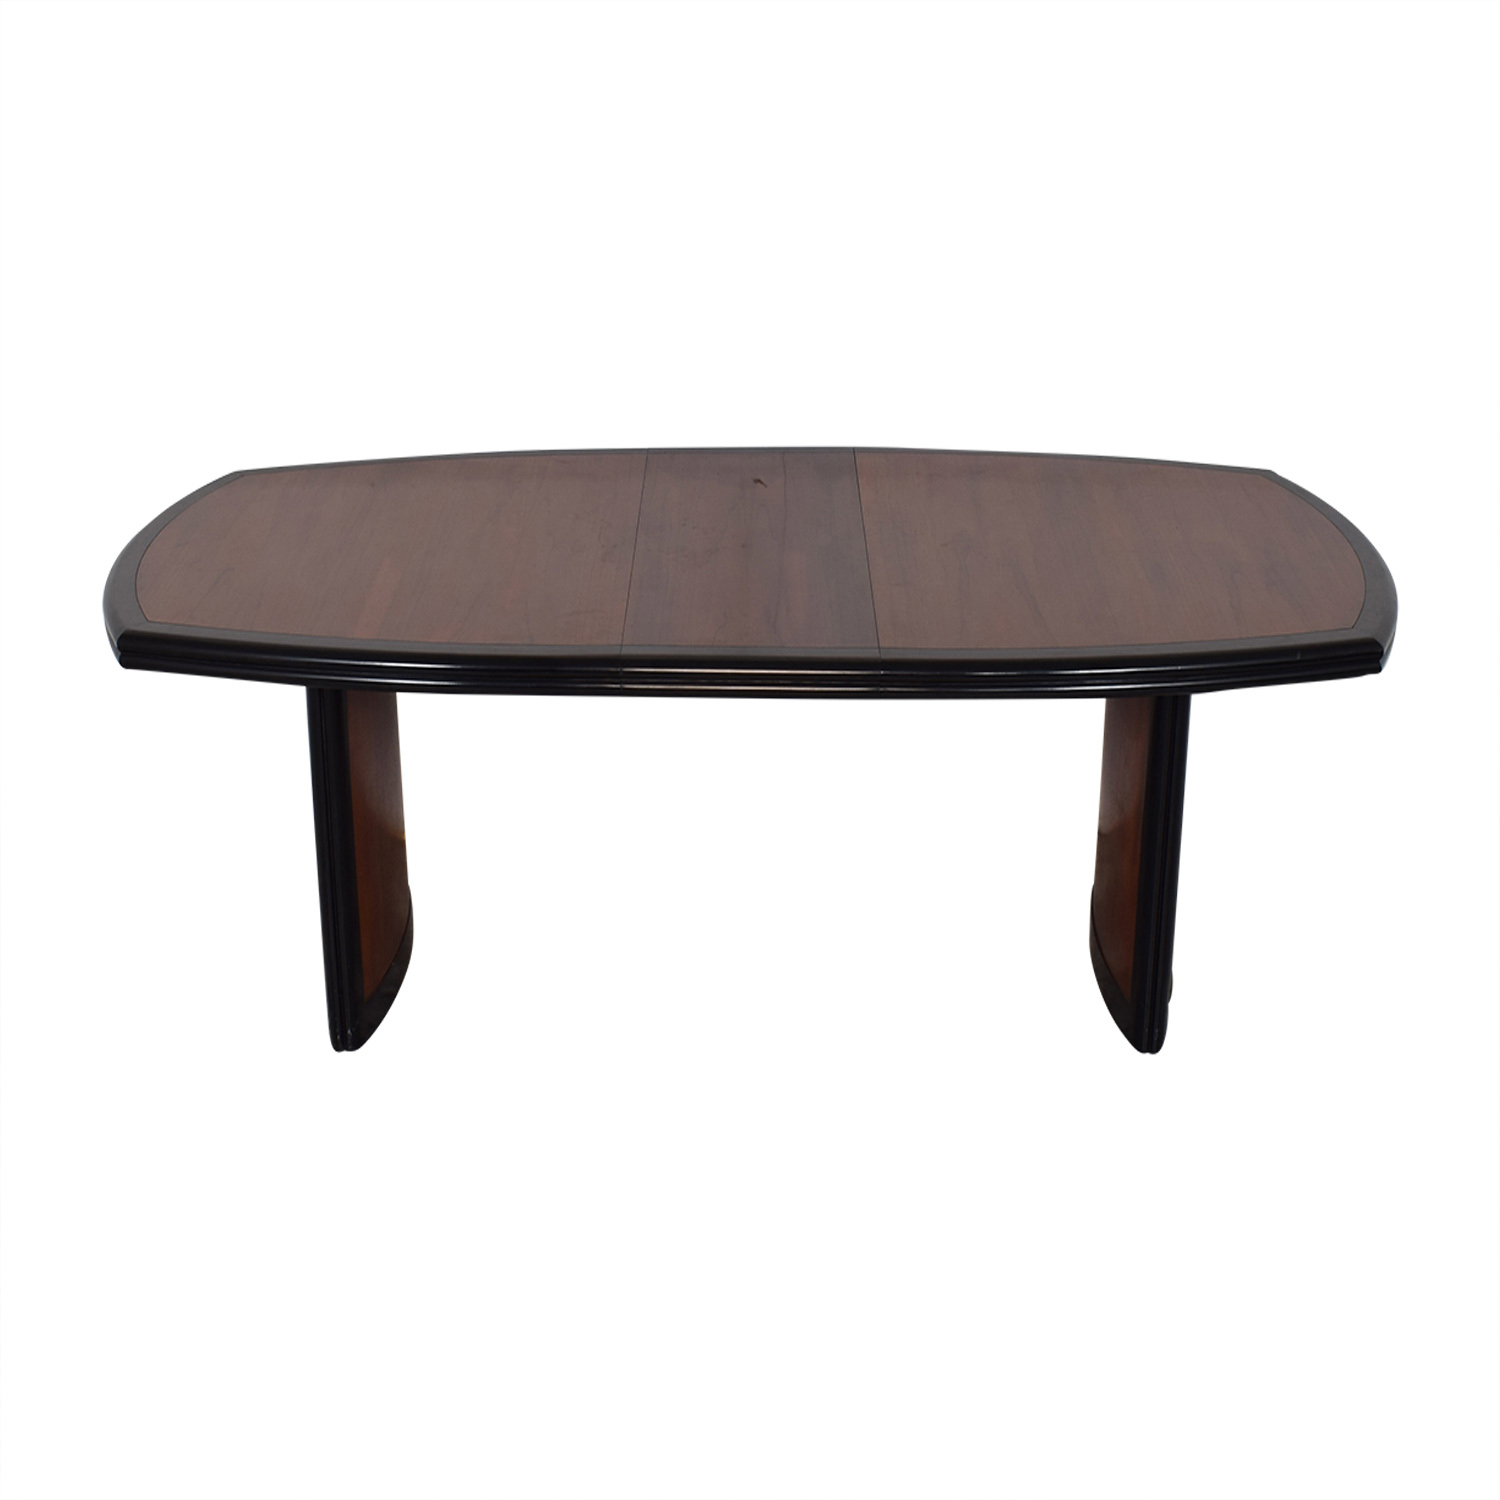 Baker Furniture Baker Furniture Dining Table